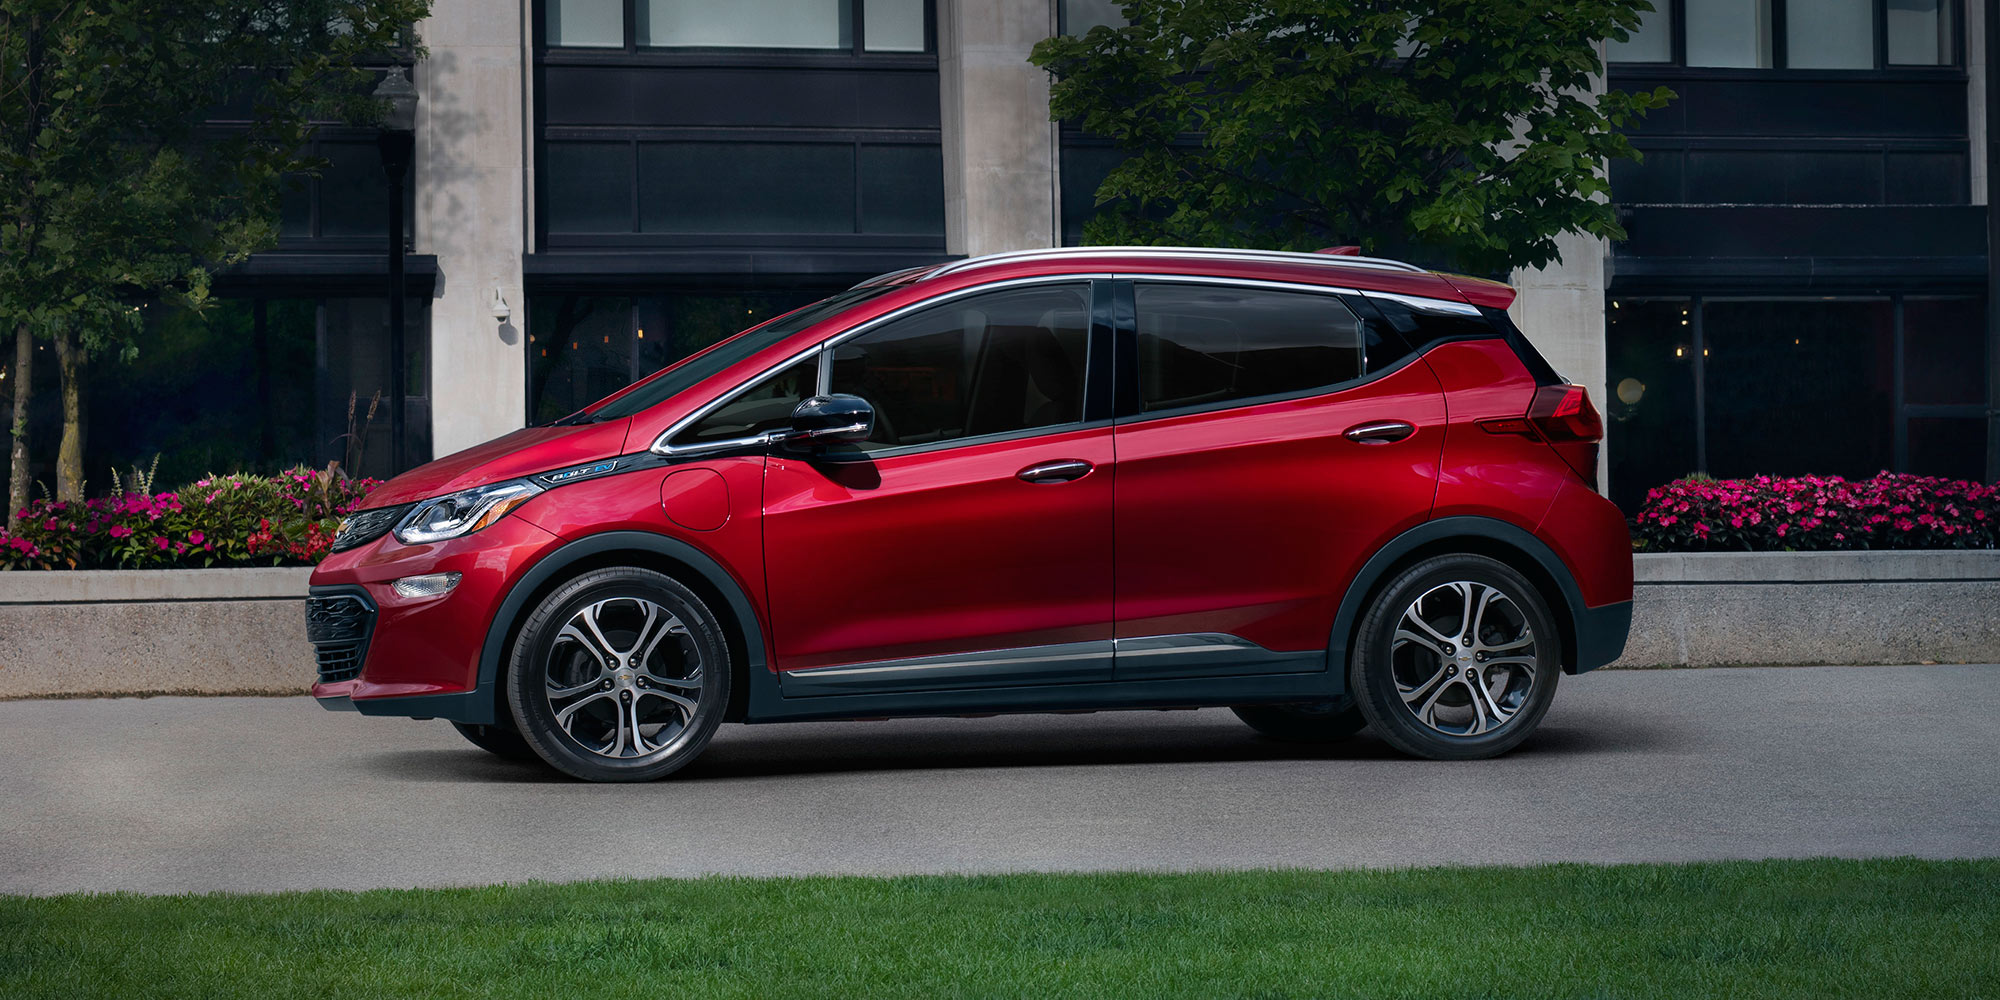 Exclusive: GM delays Chevy Bolt refresh due to pandemic ...